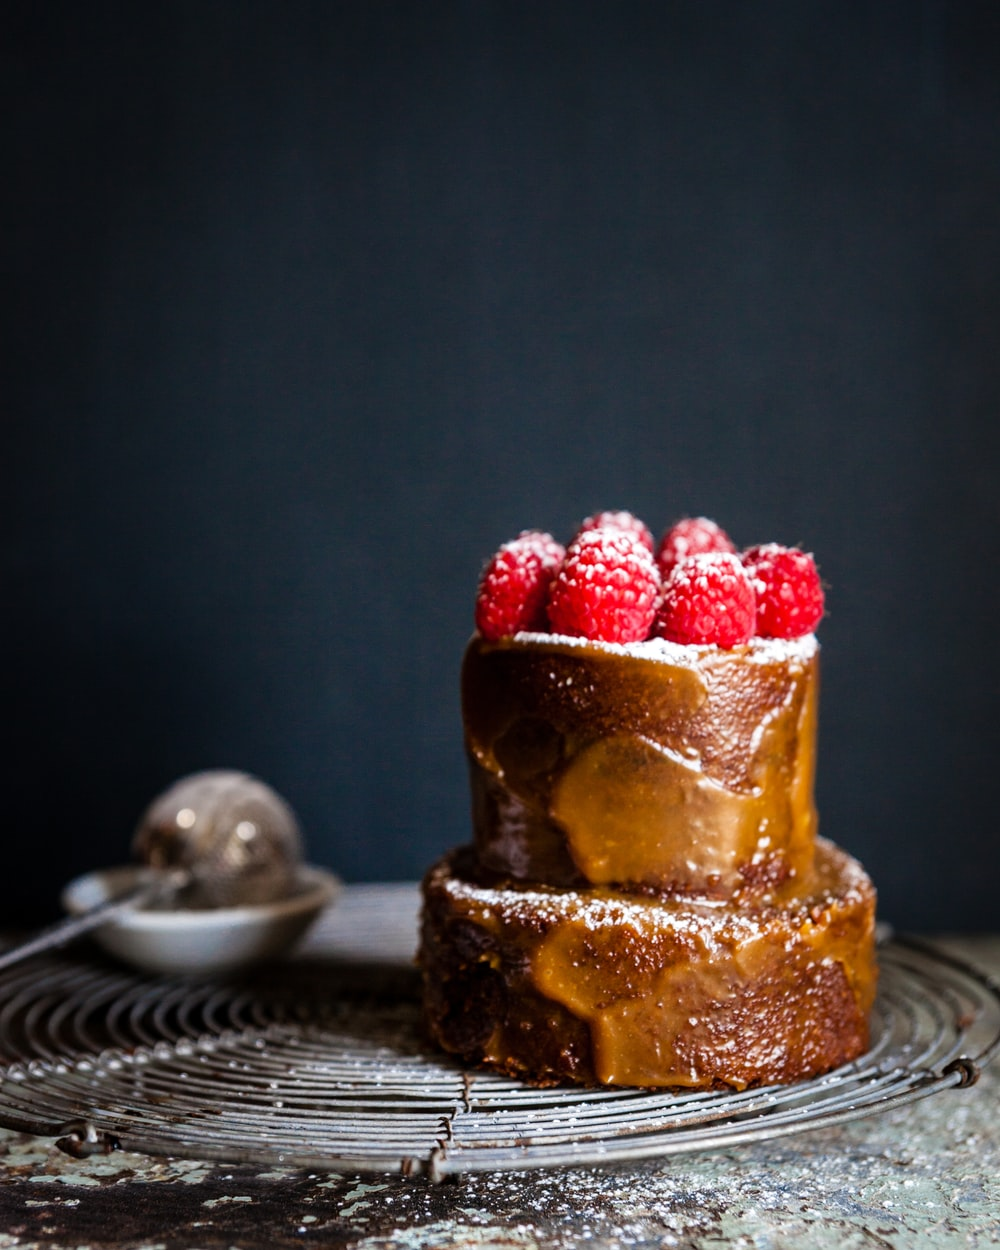 baked cake with rapsberry fruits